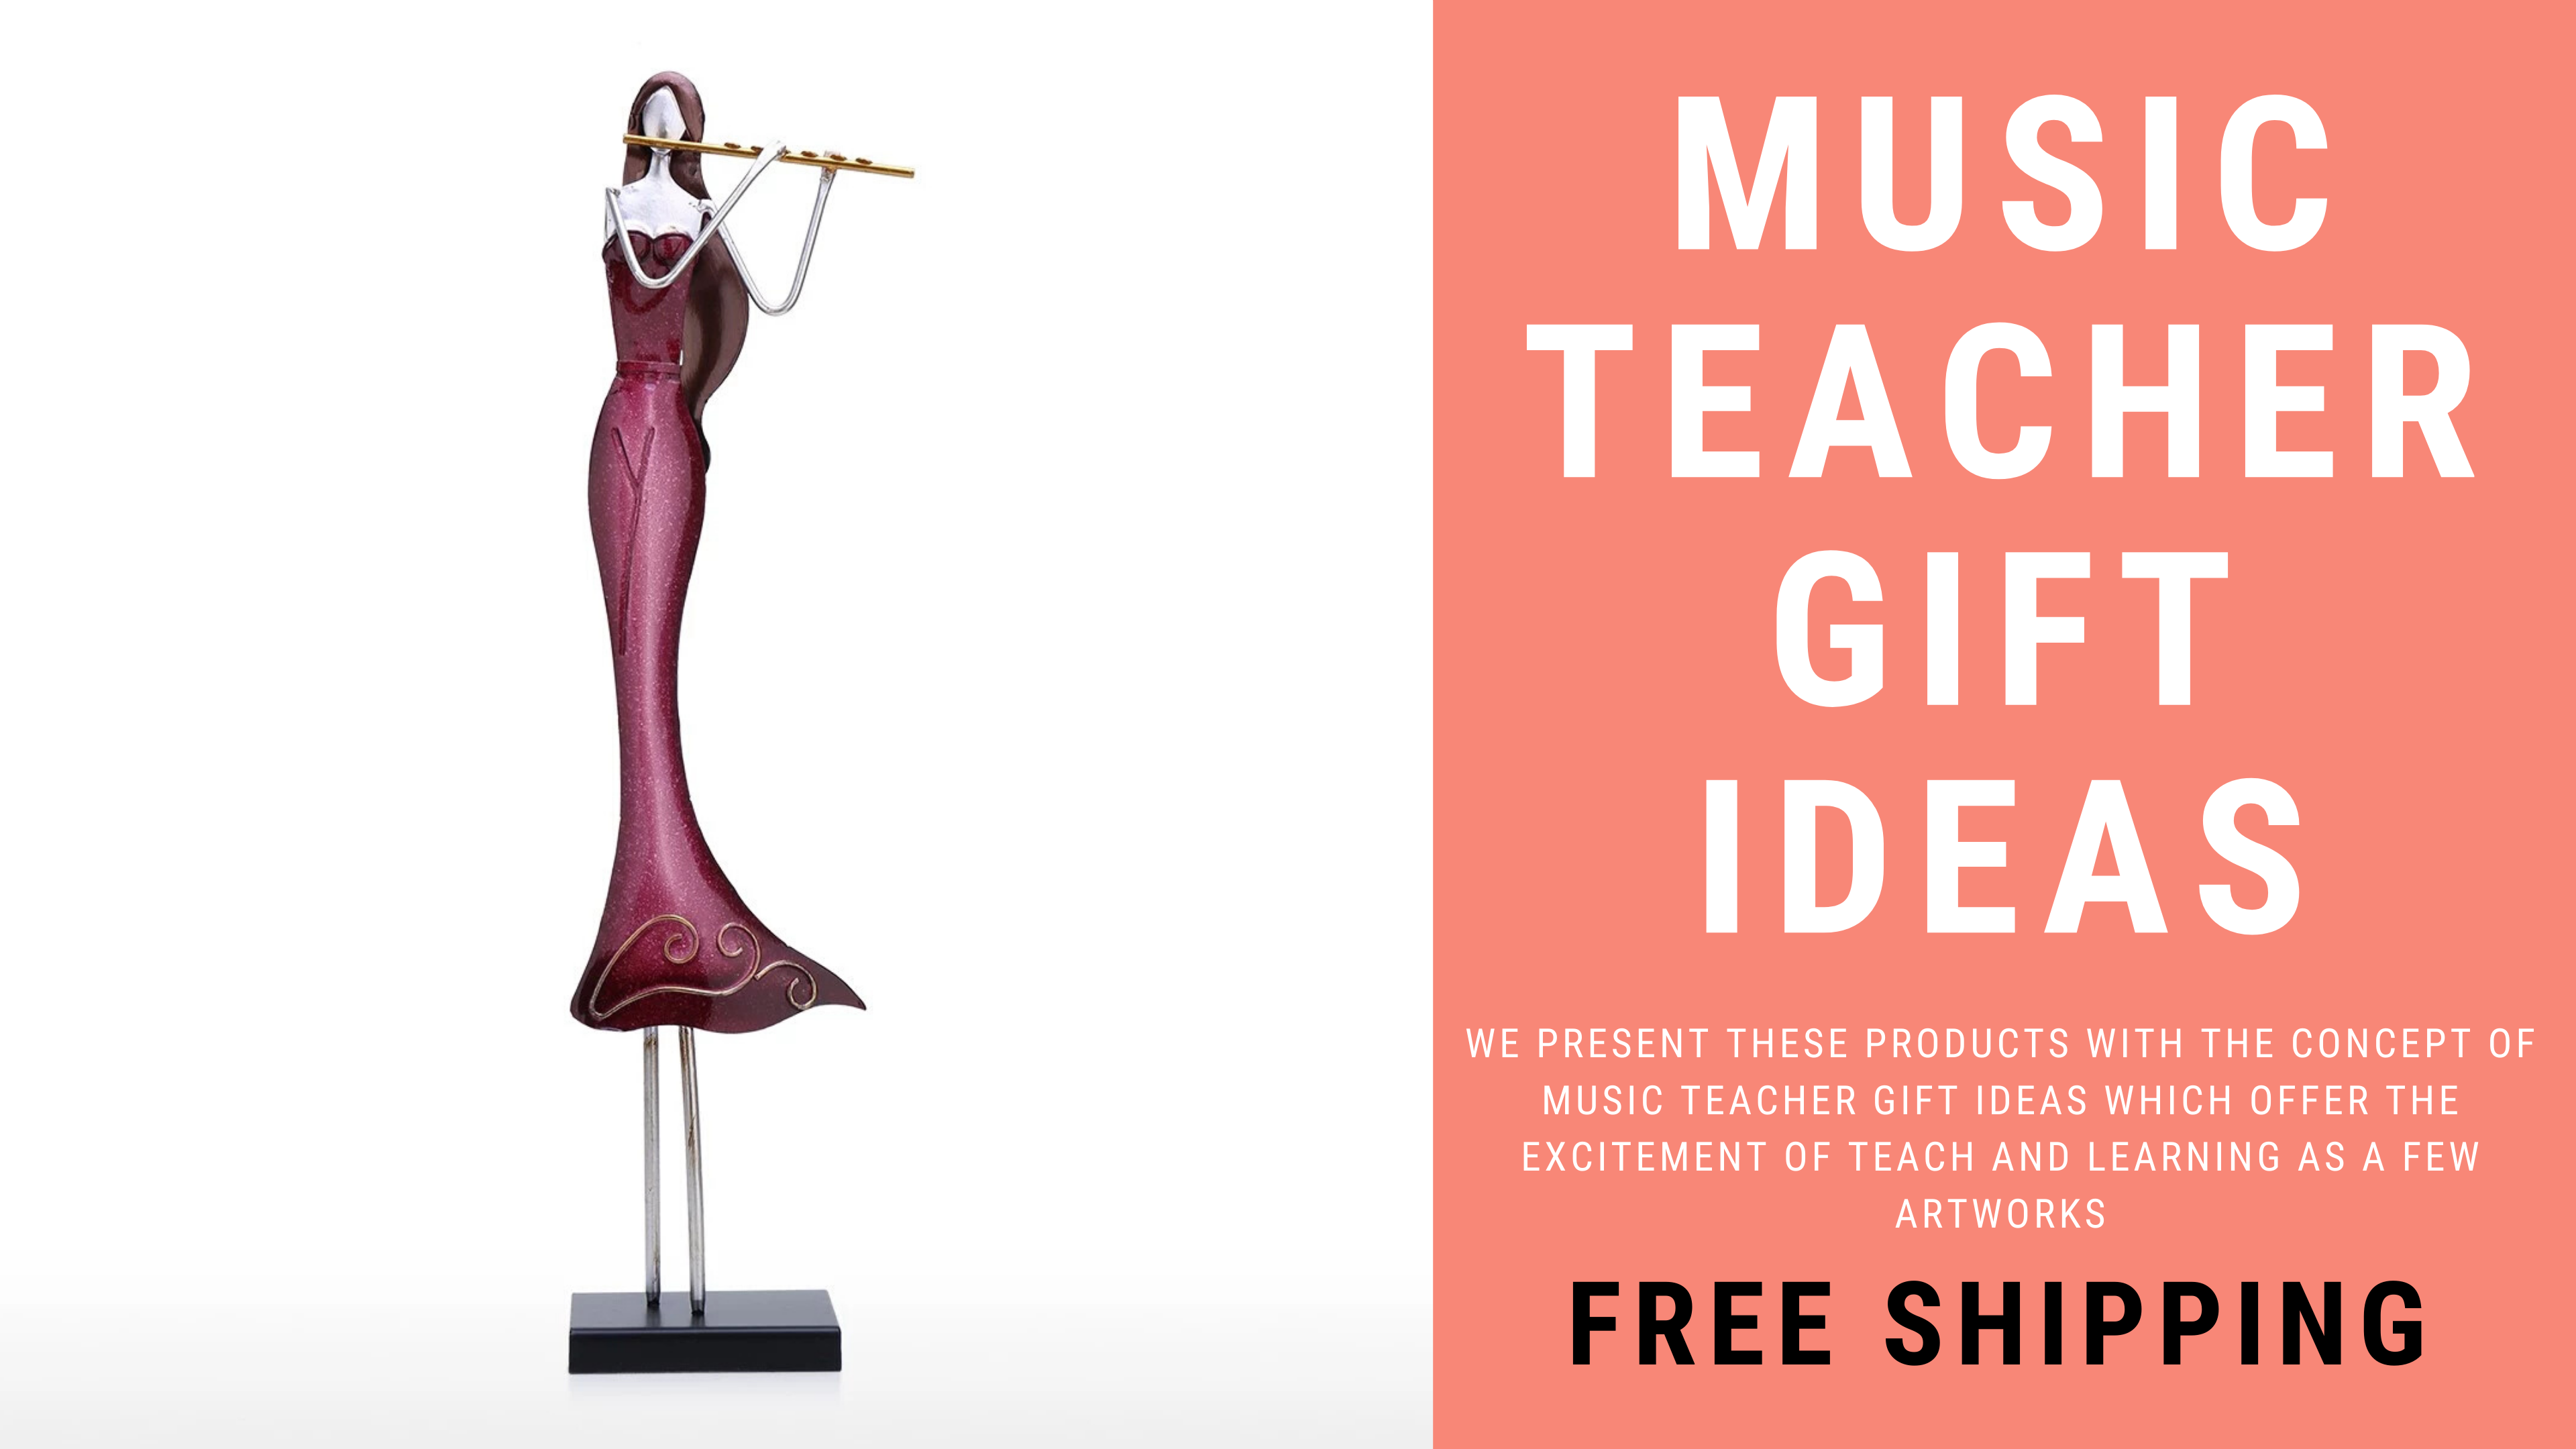 Music Teacher Gifts Emotional Unique Rhythm of Music and Art Decor